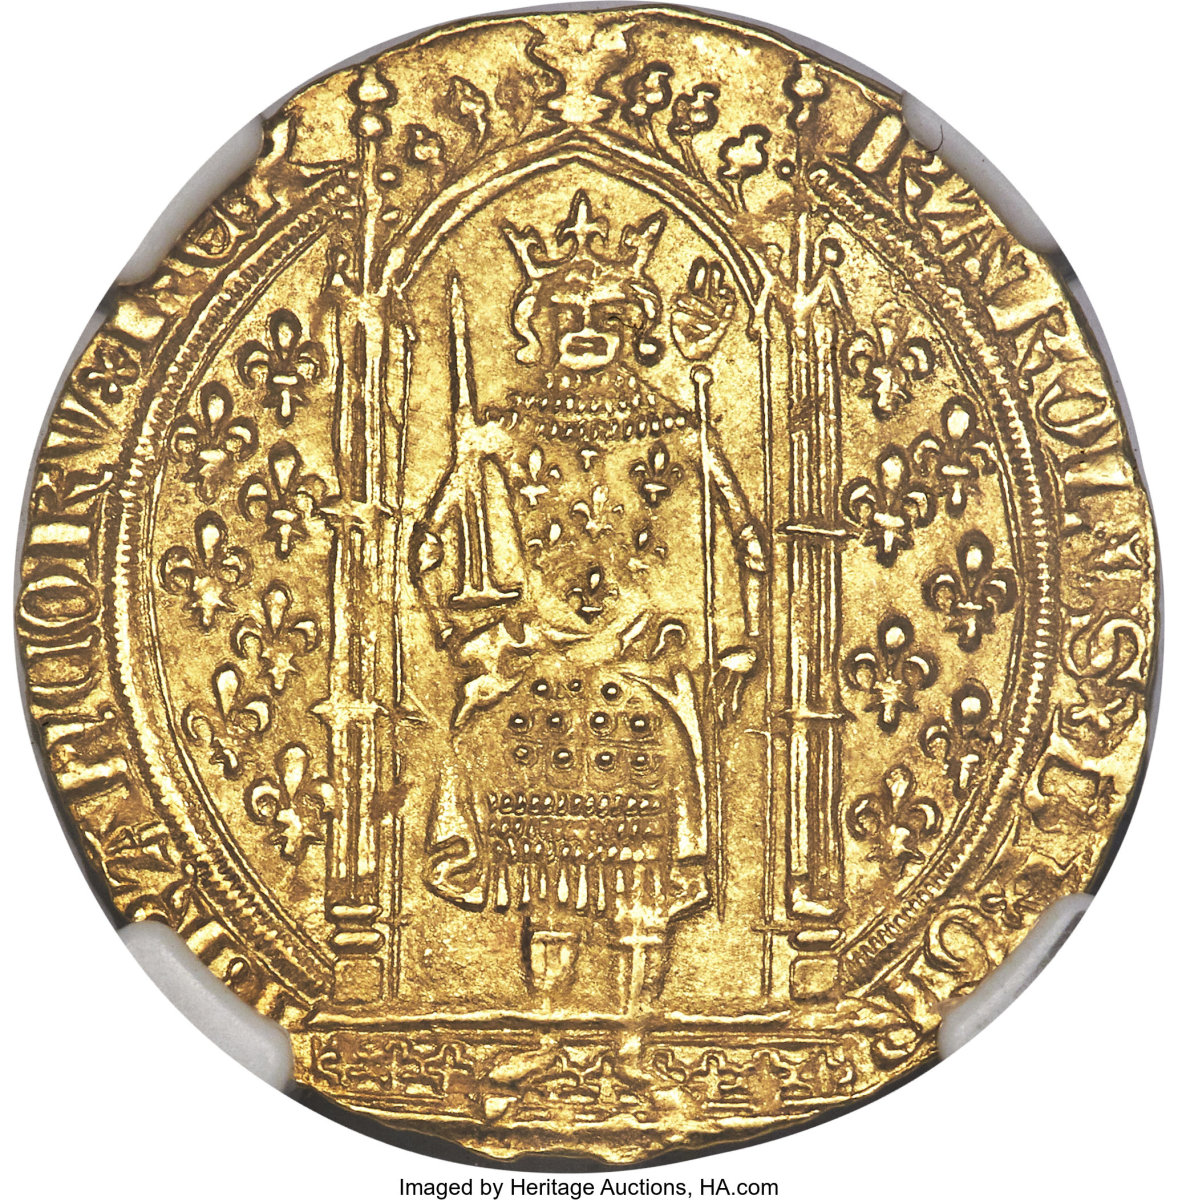 Top lot: the mint state Charles V gold franc à pied (Fr-284; Dup-360) that realized $9,000 in MS66 NGC - the highest grade of 122 certified examples. Images courtesy & © Heritage Auctions